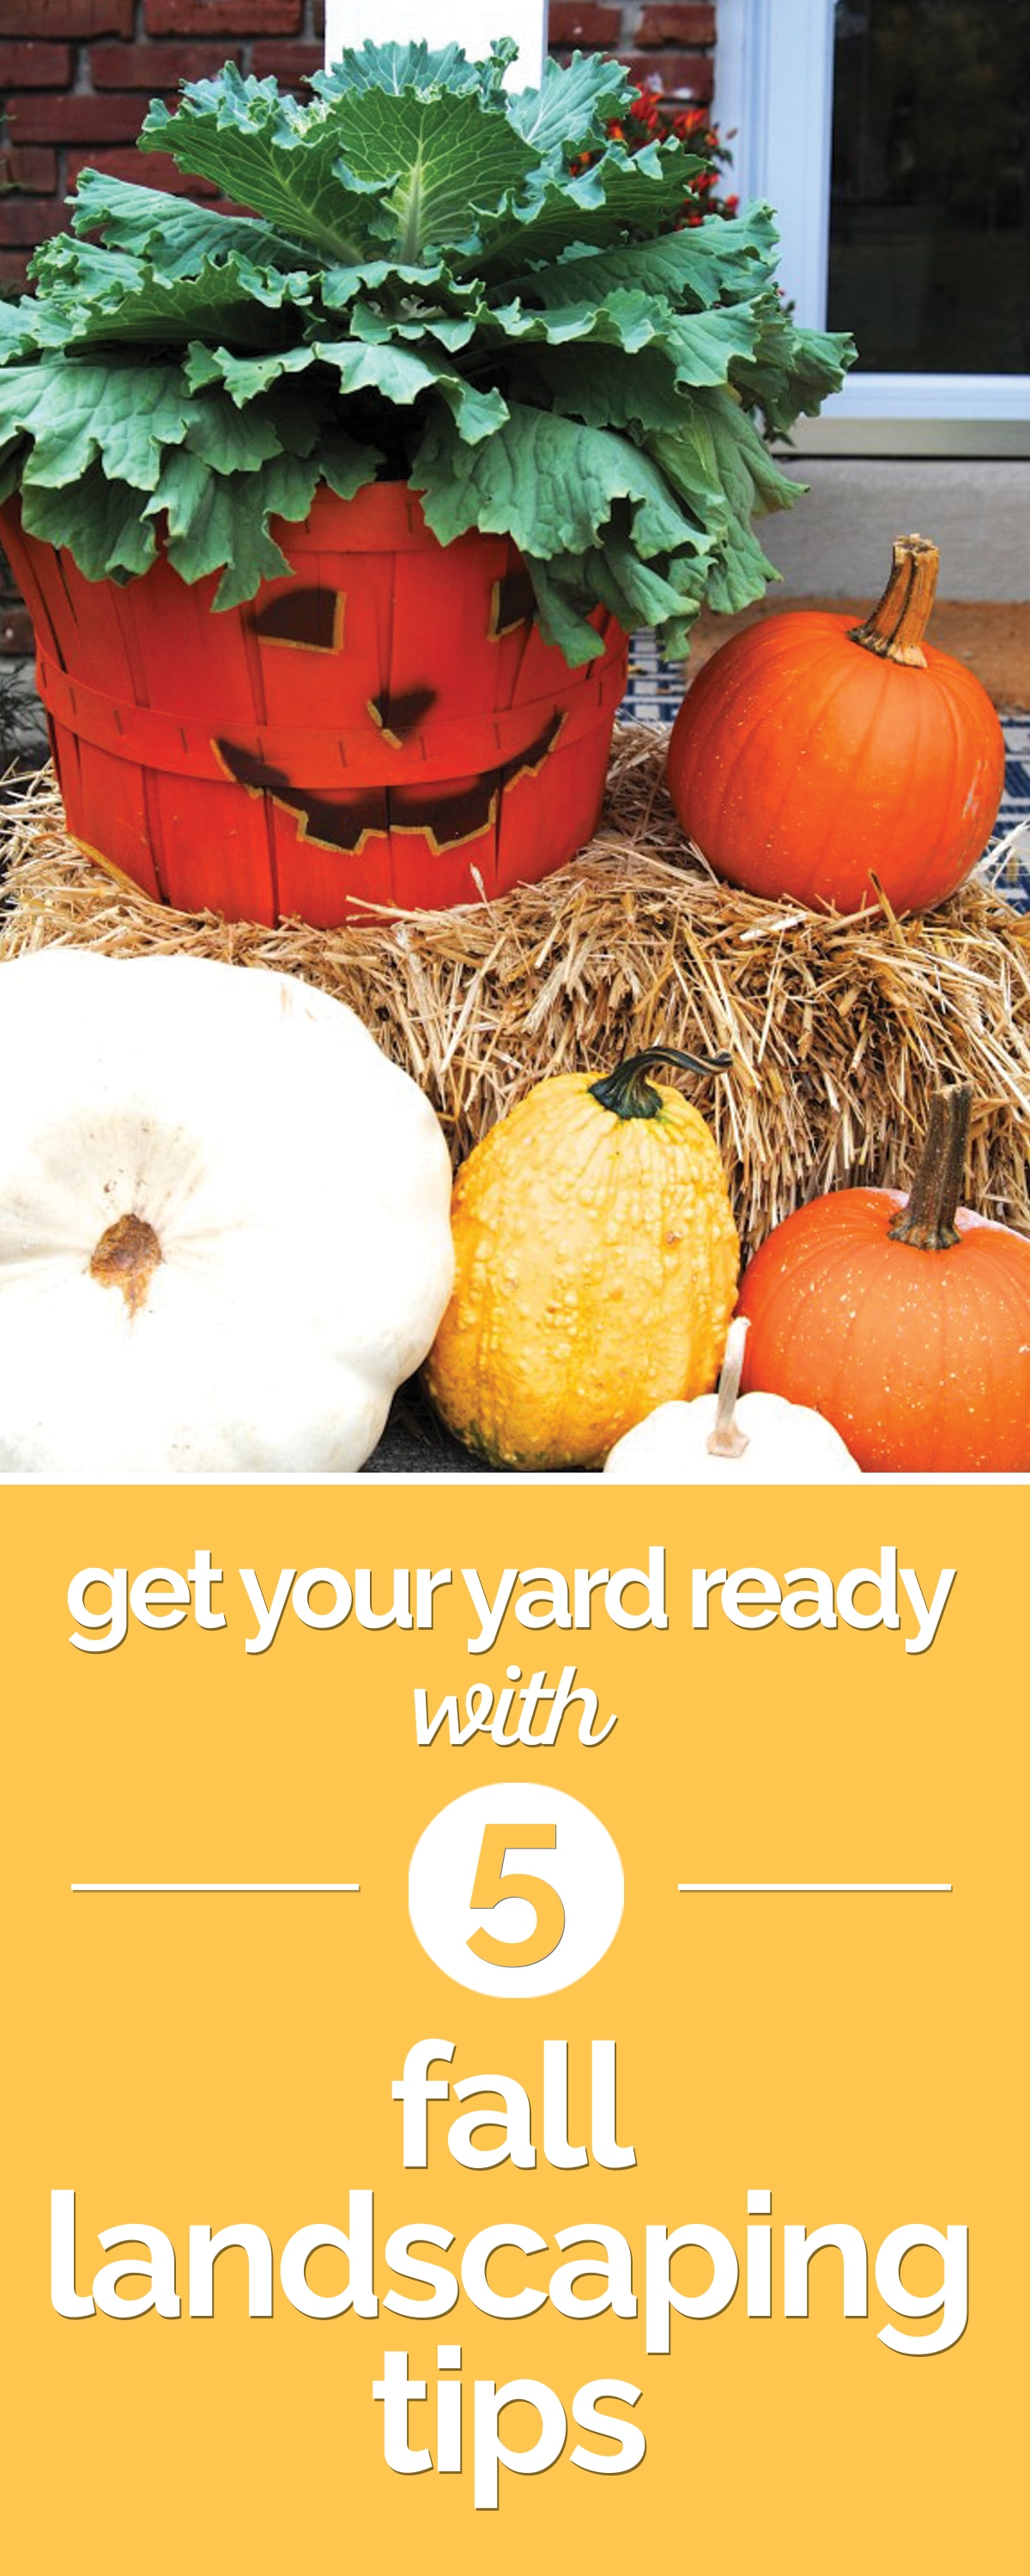 Get Your Yard Ready With 8 Fall Landscaping Tips